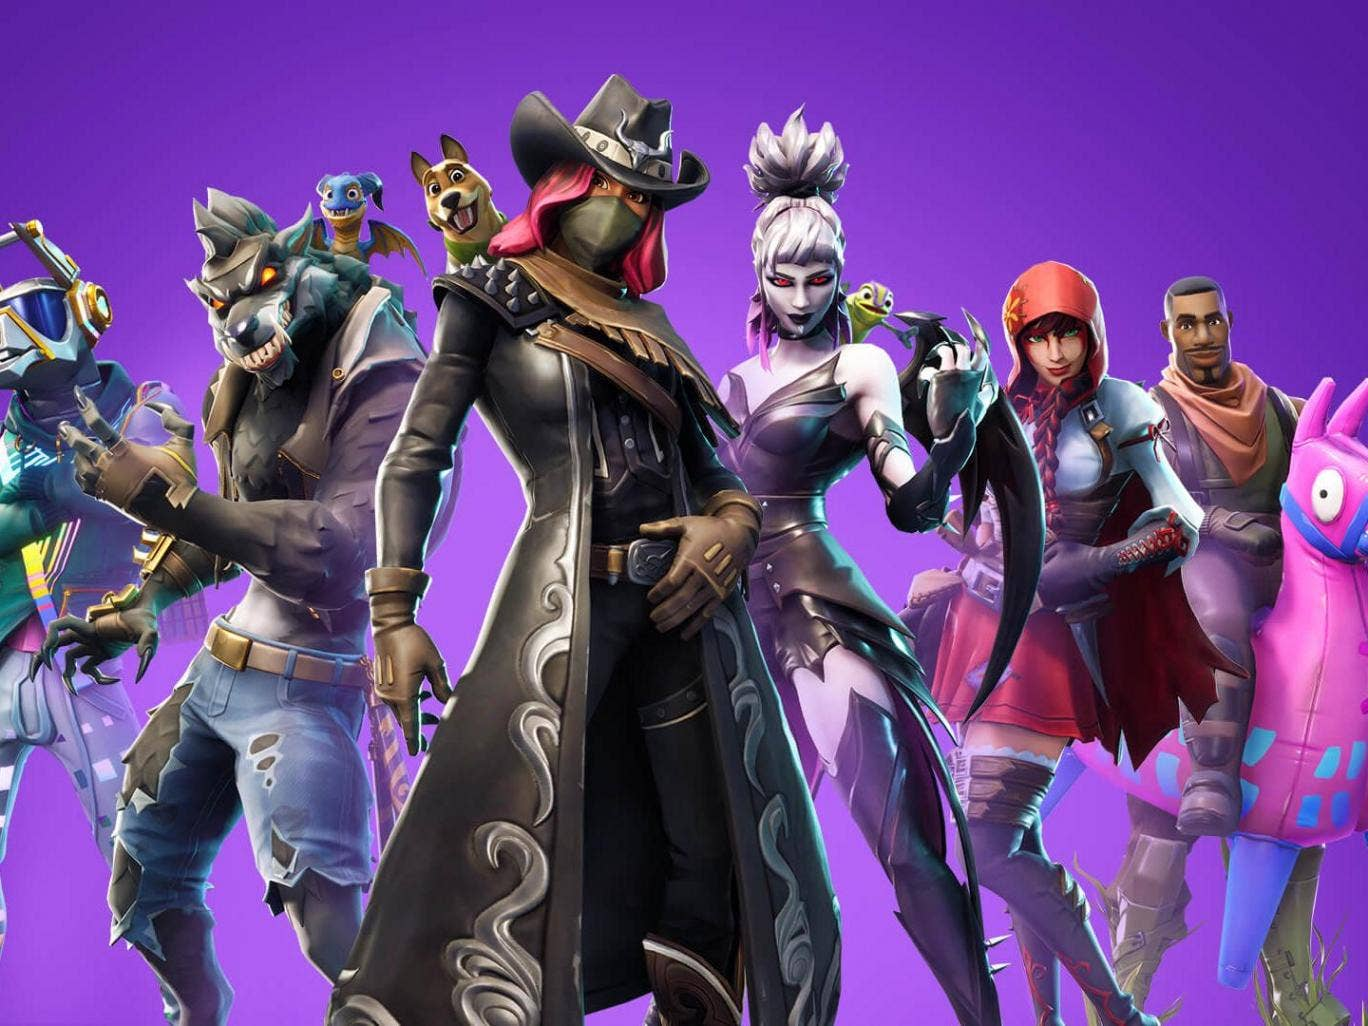 Fortnite Gamer Livestreams Himself Attacking Pregnant Woman The